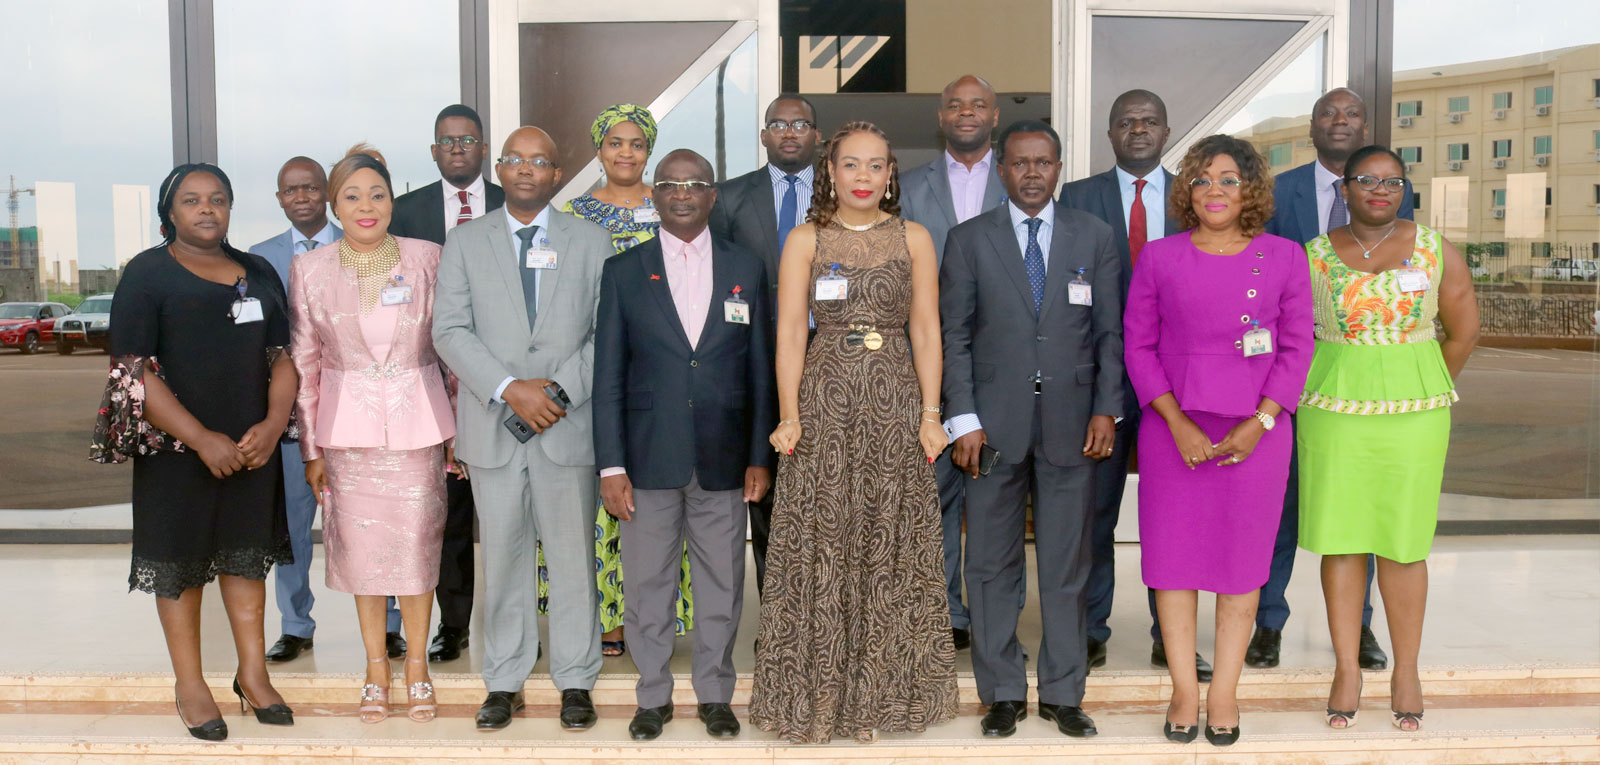 The Port Authority of Kribi (PAK) interested in SNH management methods